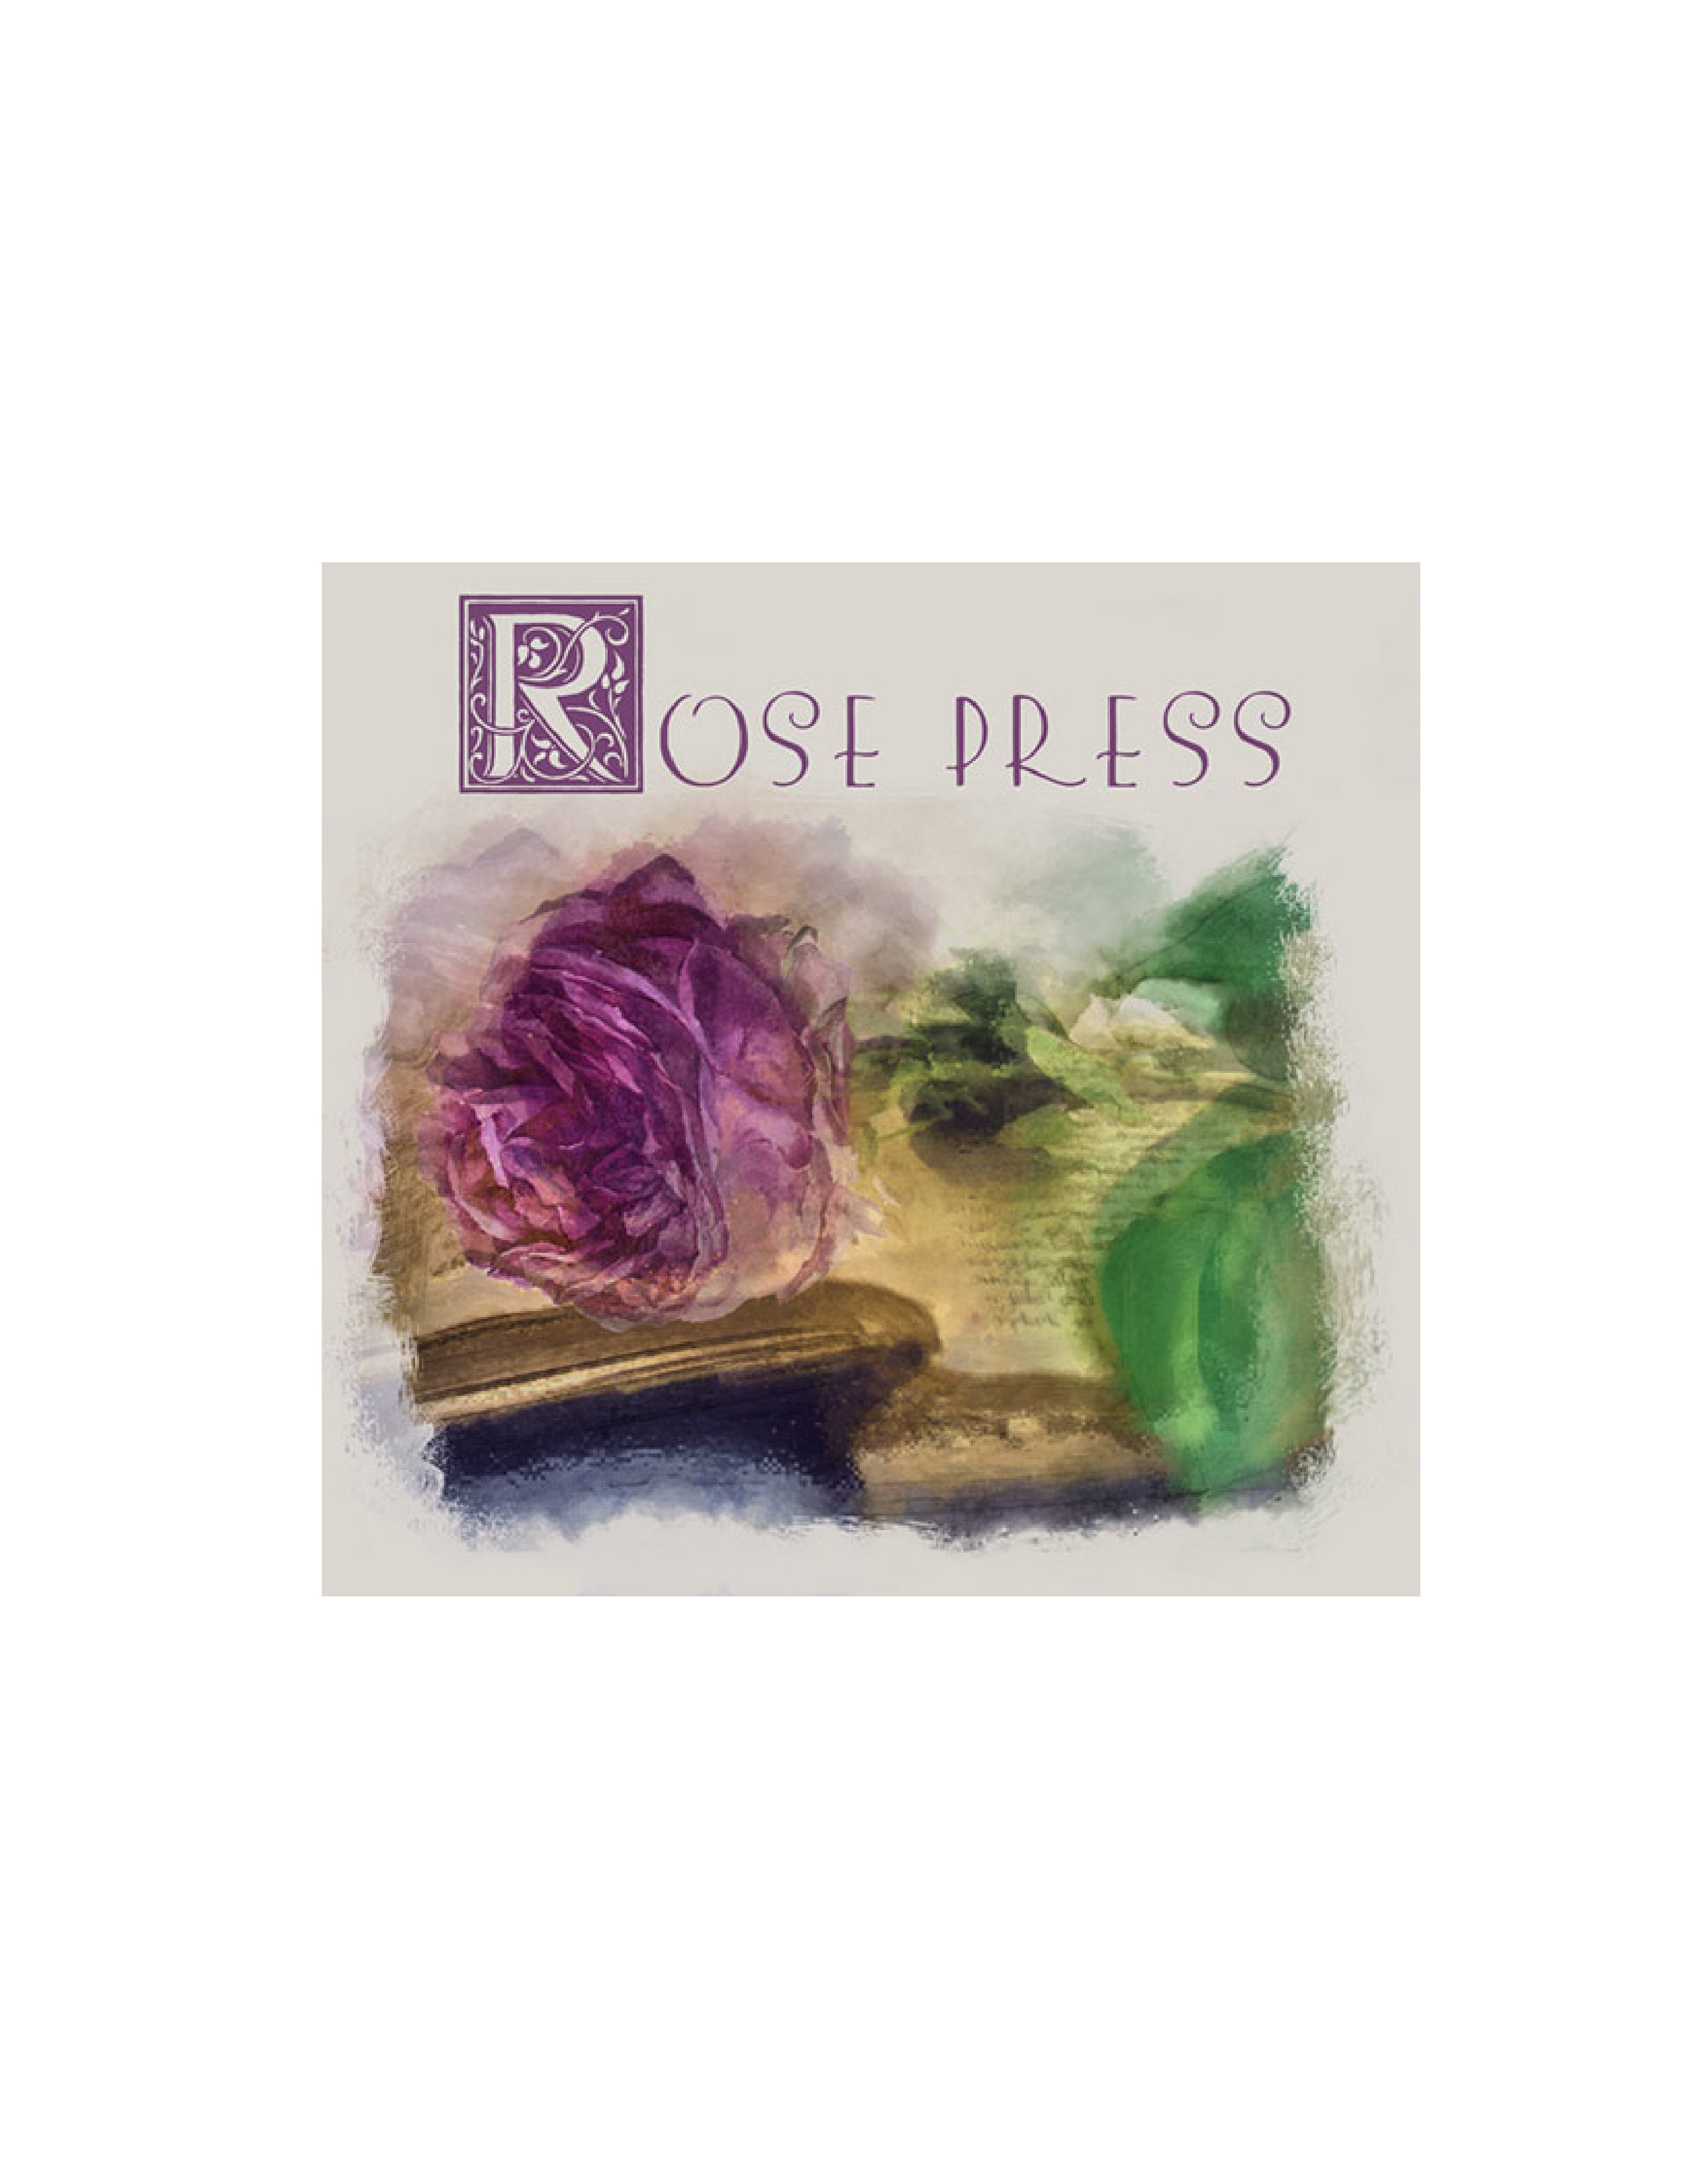 - ROSE PRESS ~ Books to bring you home to yourself. See the rest of the Rose Press collection